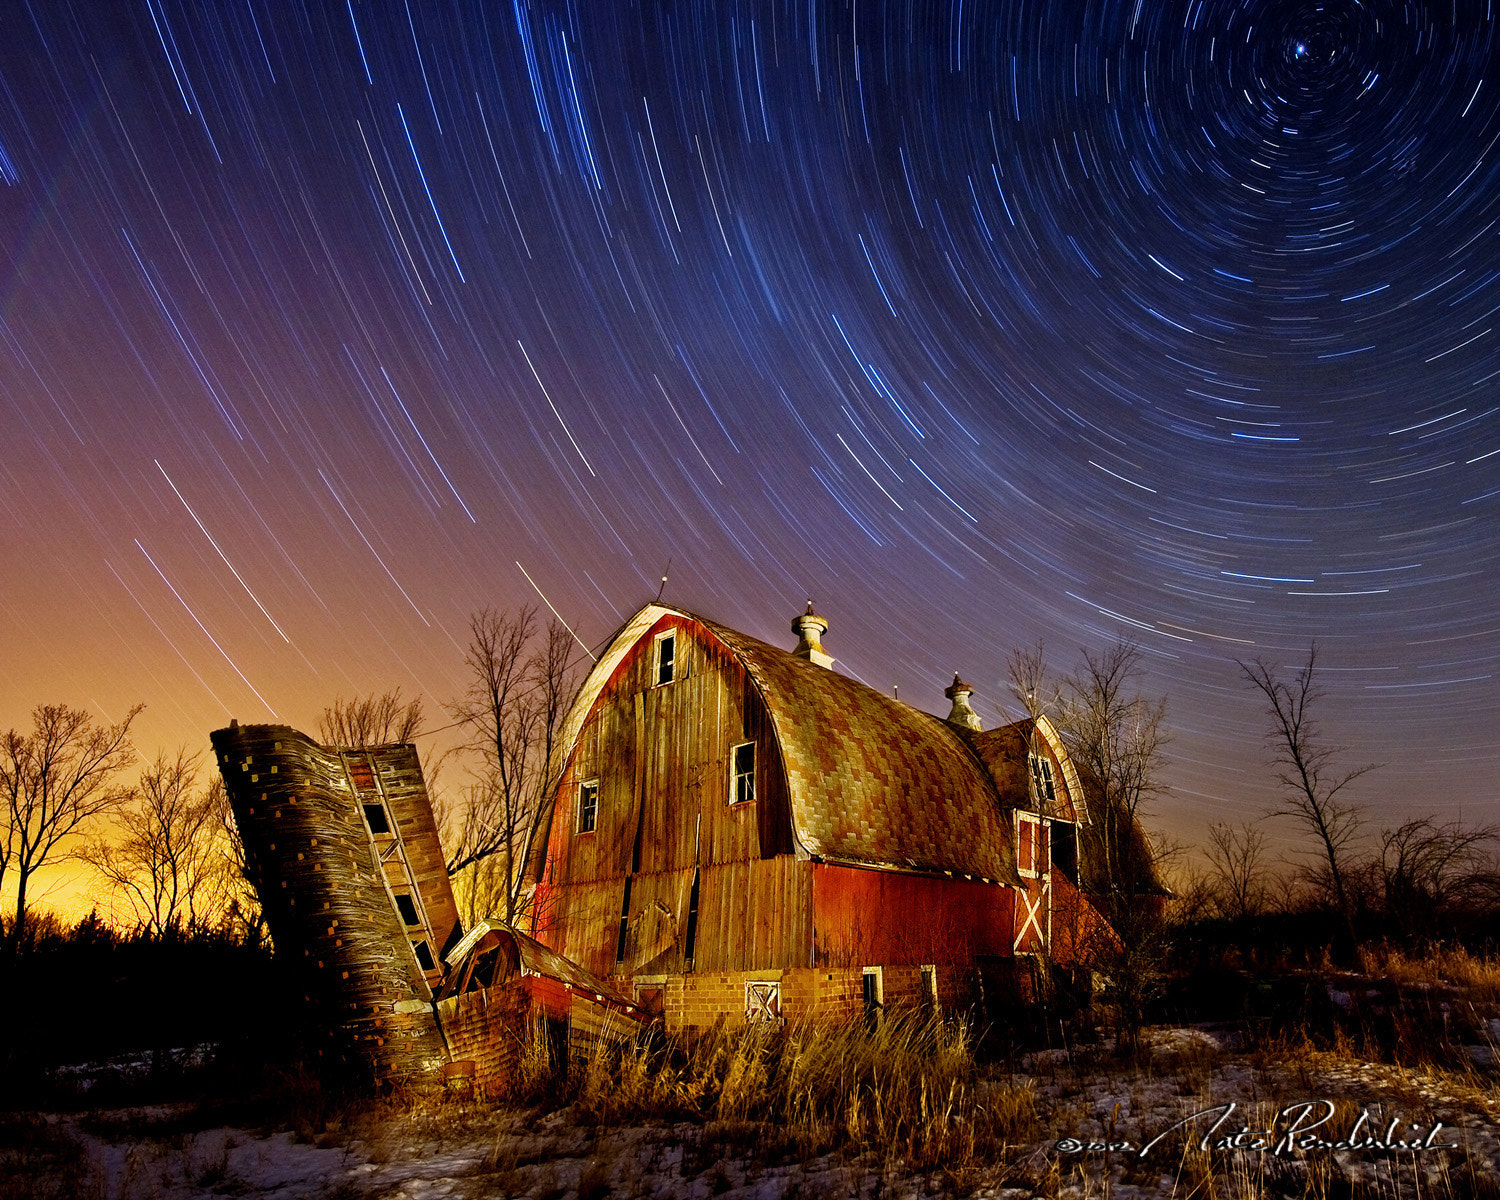 Photograph Starry, Starry Night by Nate Rendulich on 500px